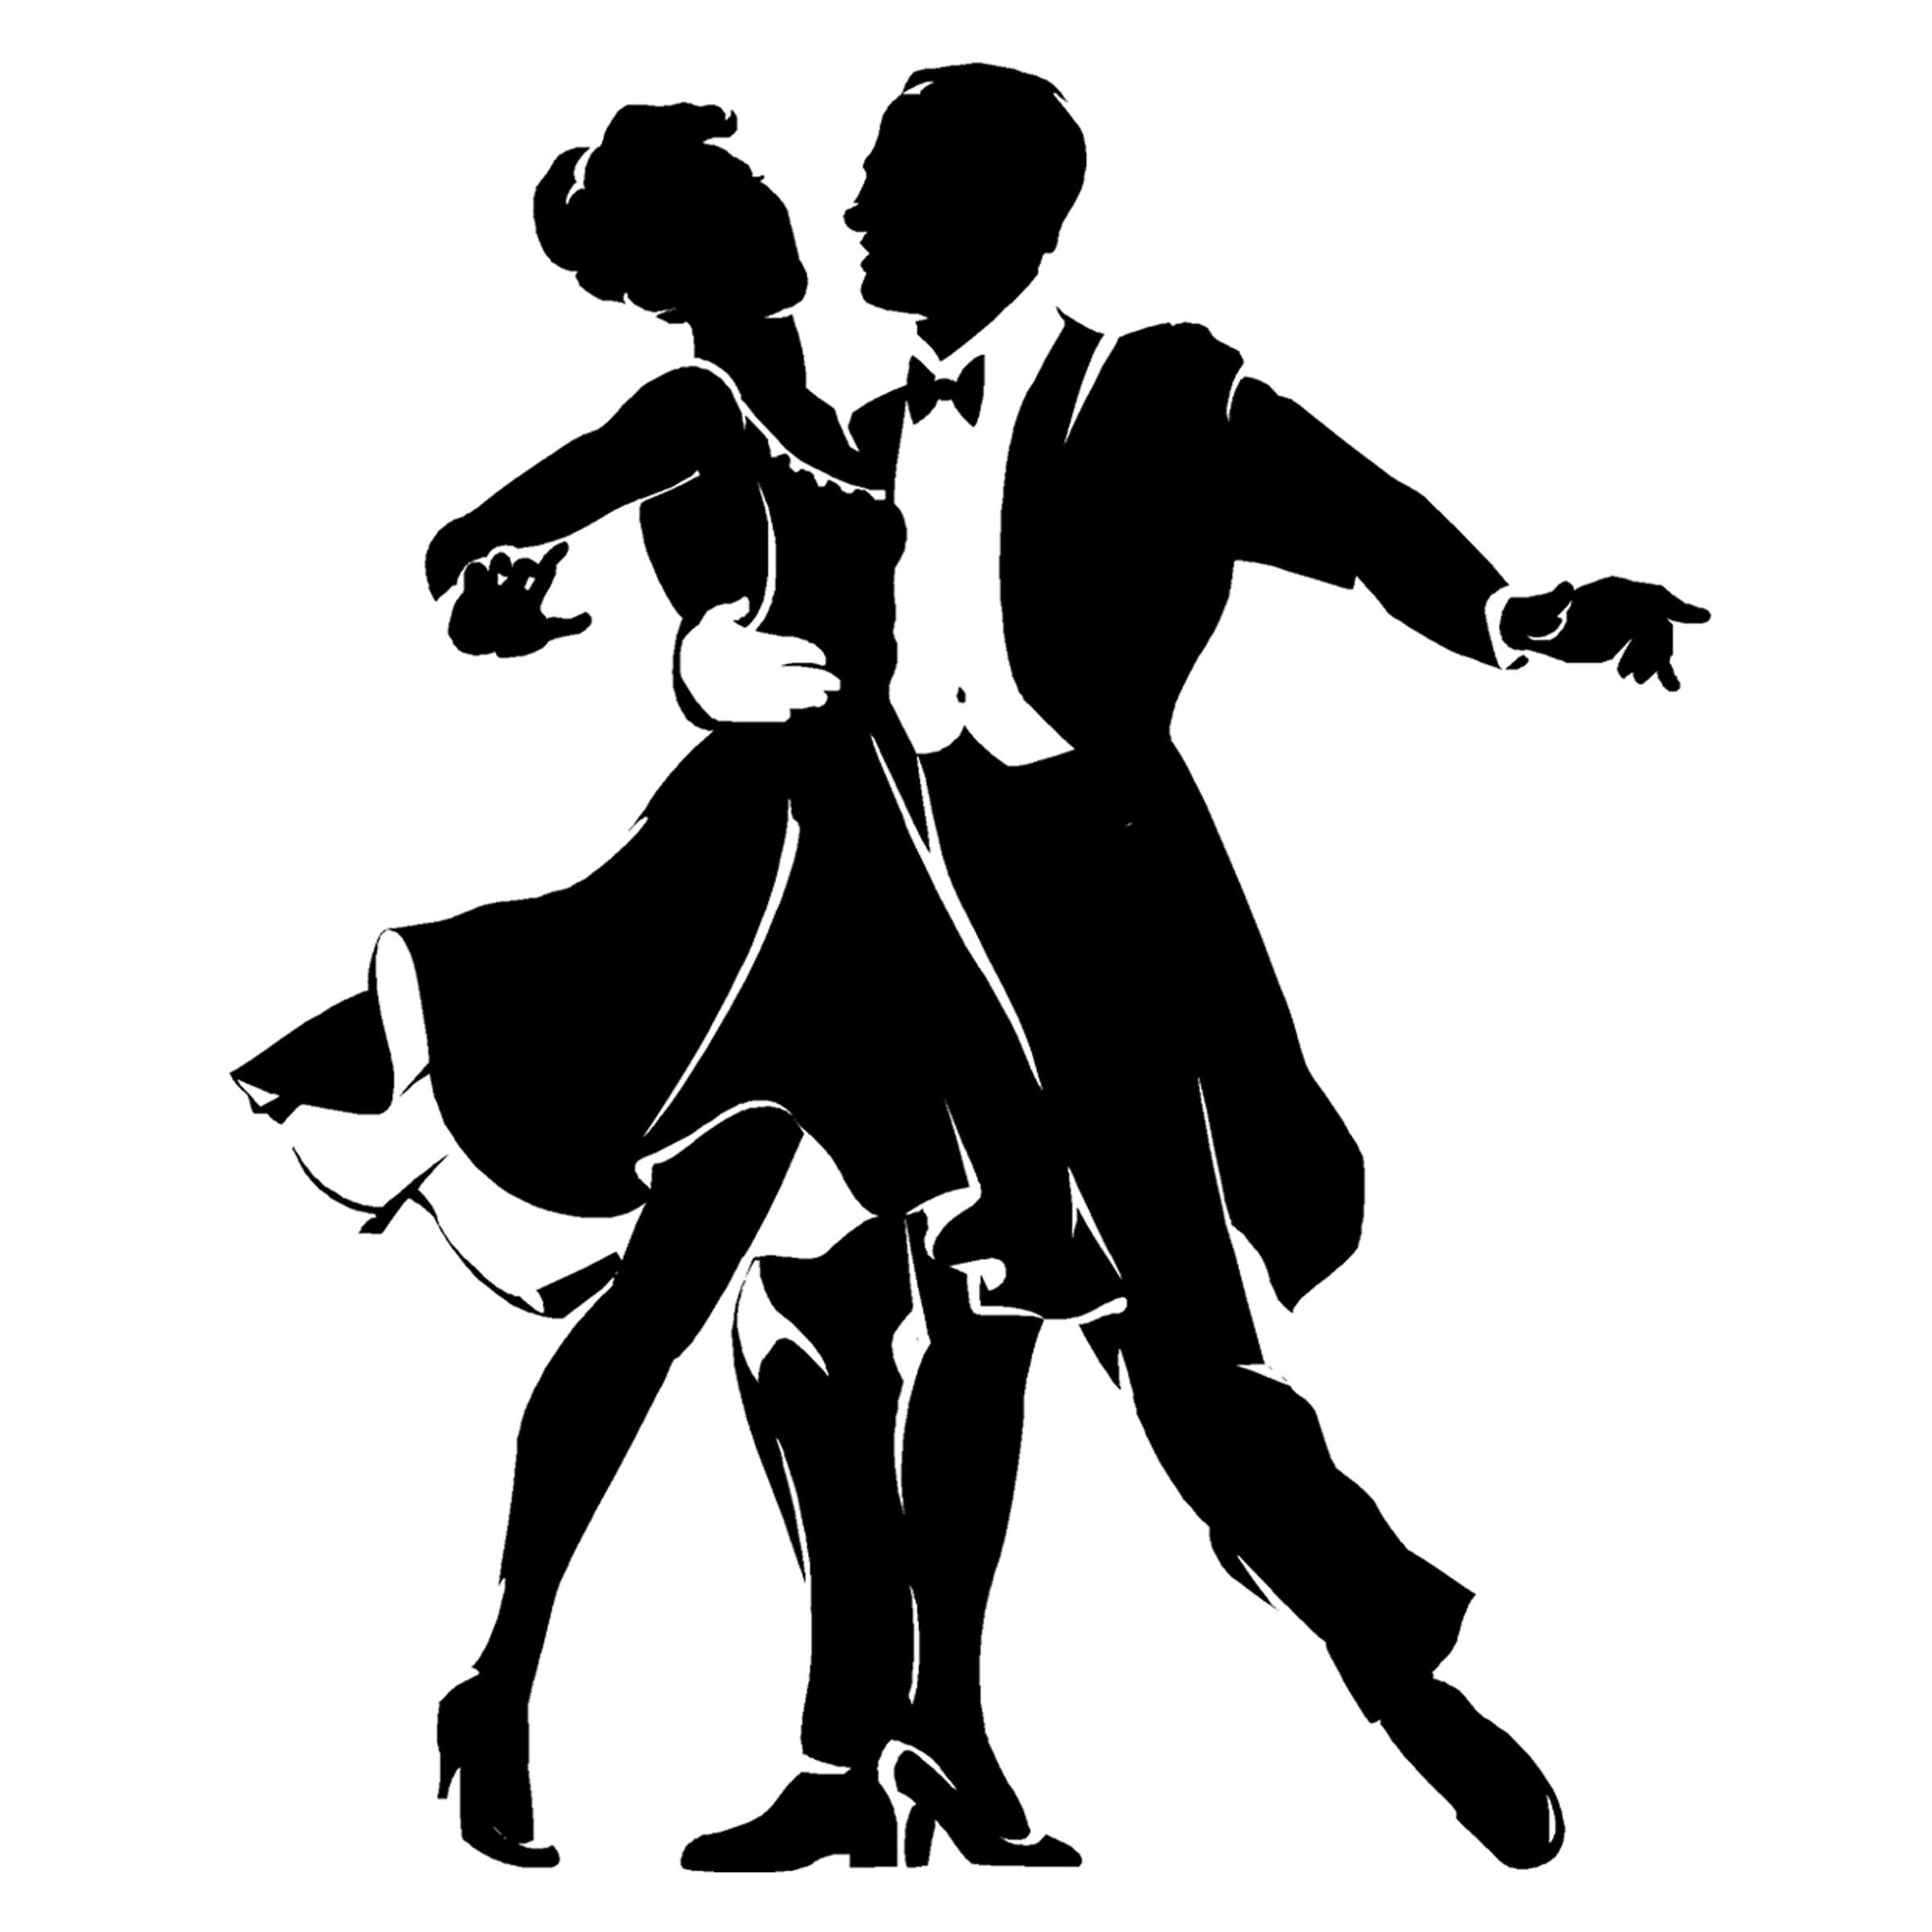 One dance clipart clipart transparent library Bling on My Screen | Motion | Silhouette, Couple silhouette ... clipart transparent library